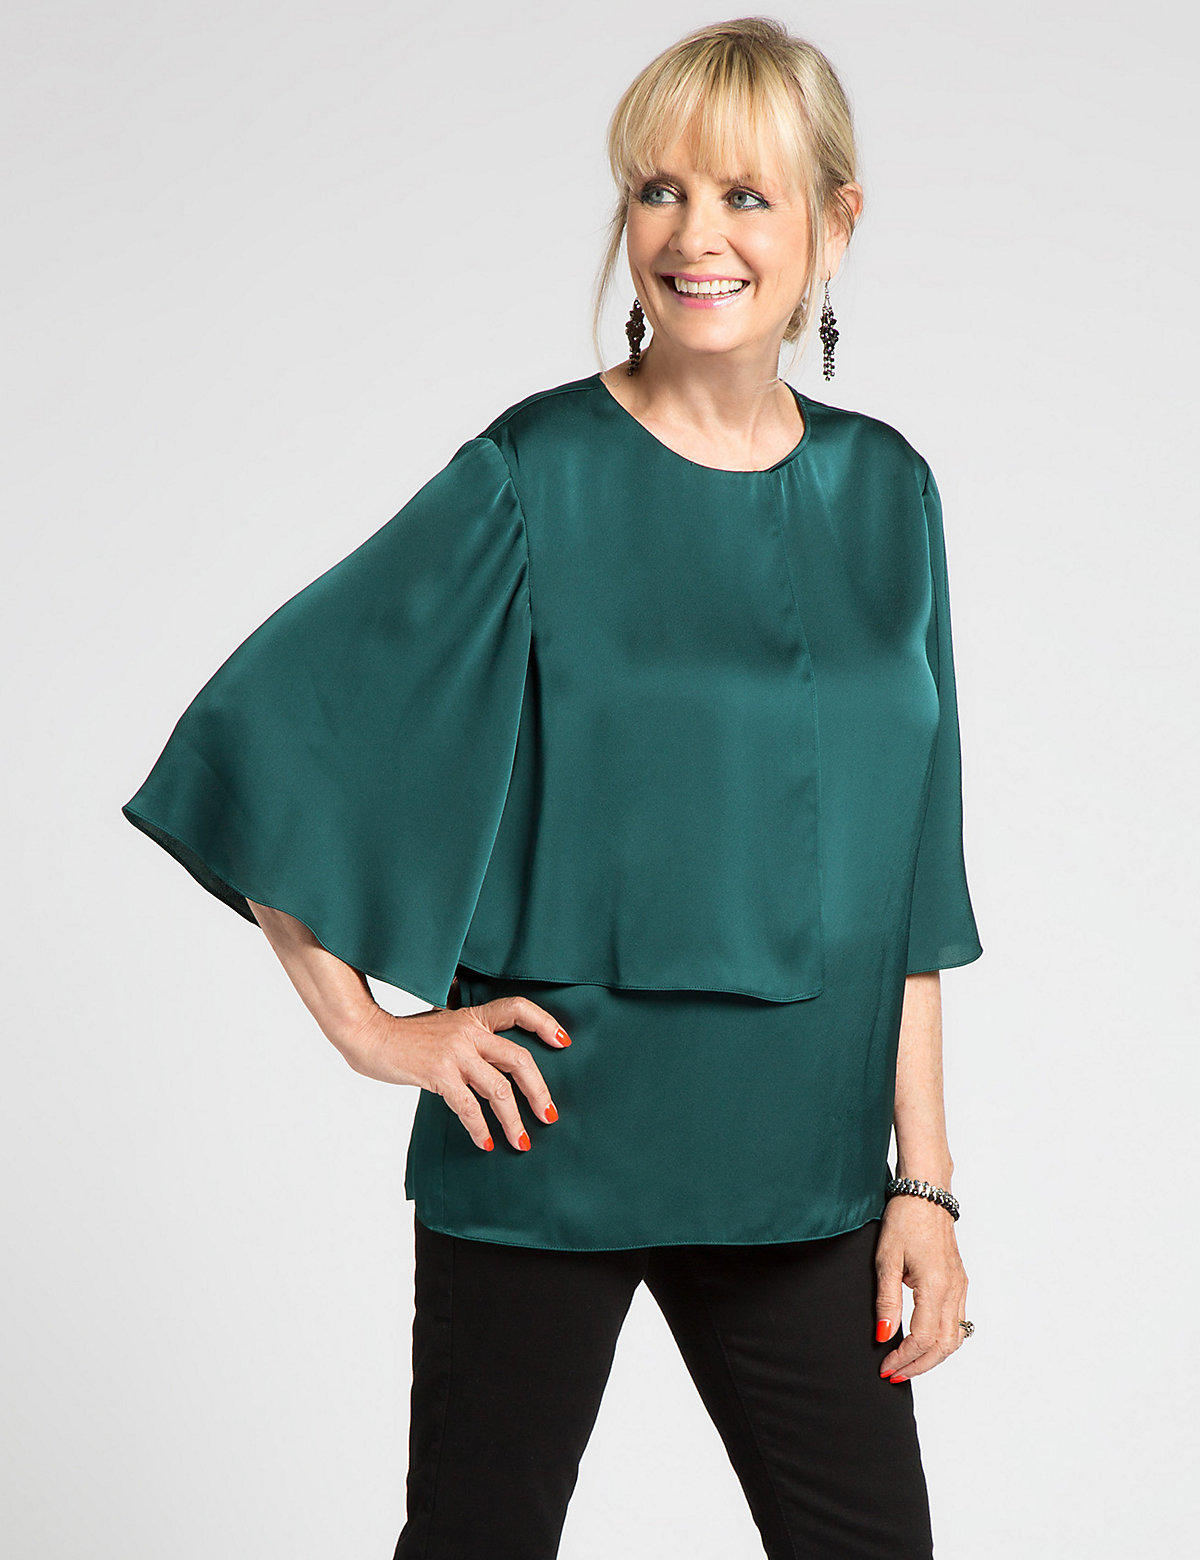 Designed by Twiggy Double Layer 3/4 Sleeve Blouse